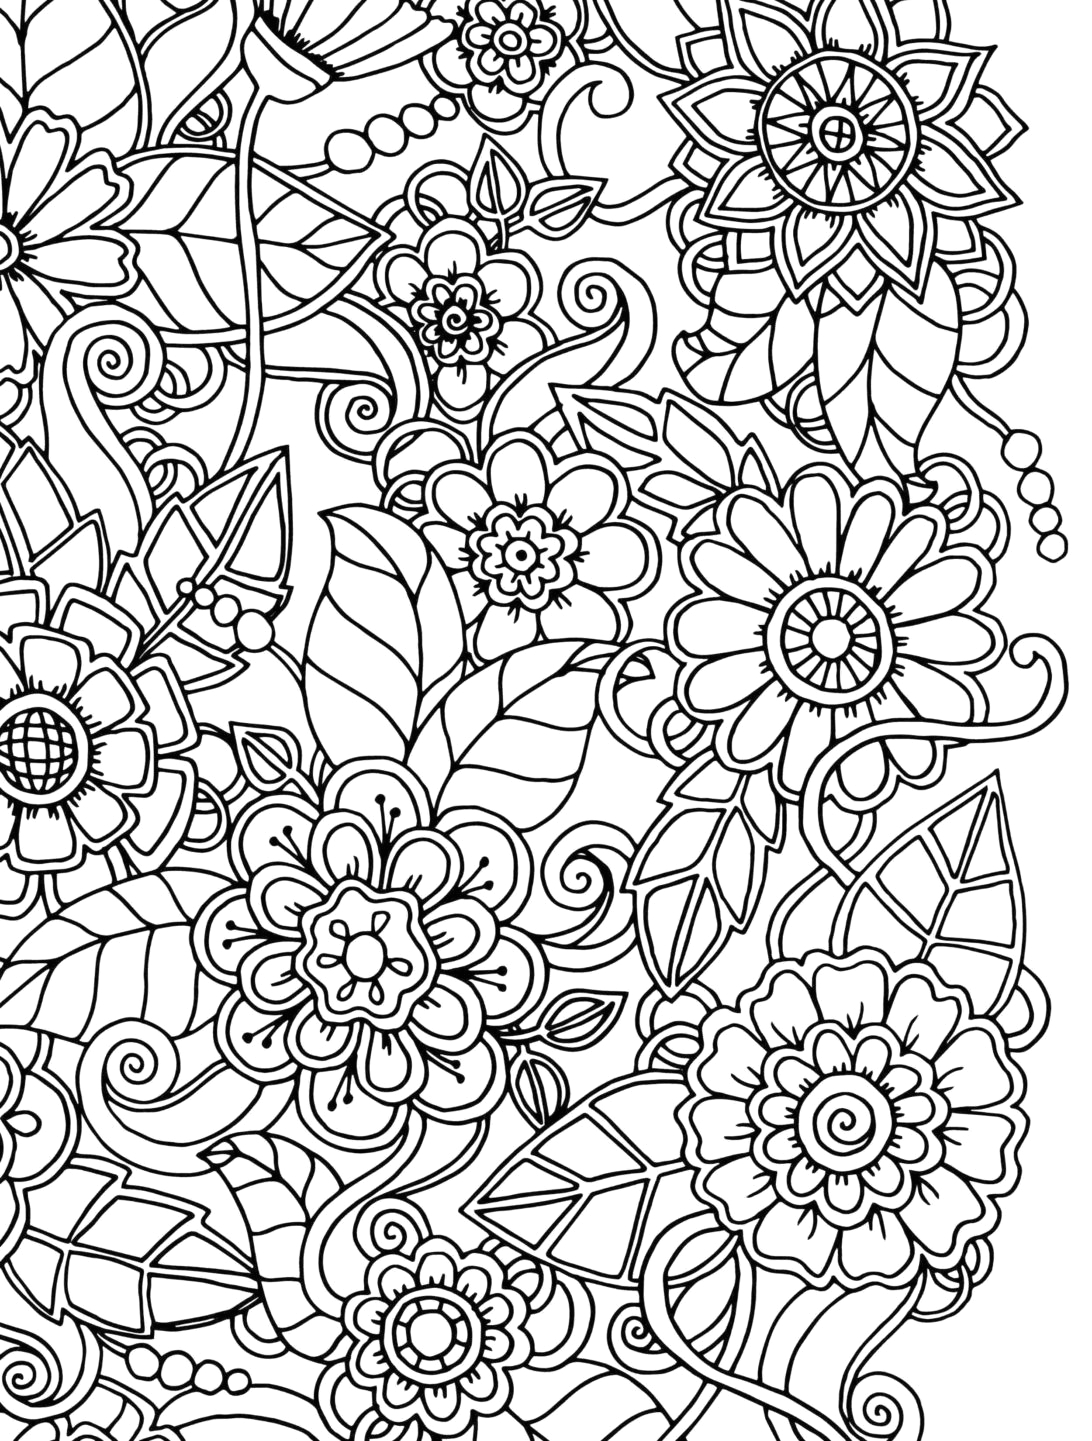 Free Printable Coloring Pages for Seniors with Dementia Free Colouring Pages for Dementia Patients Met